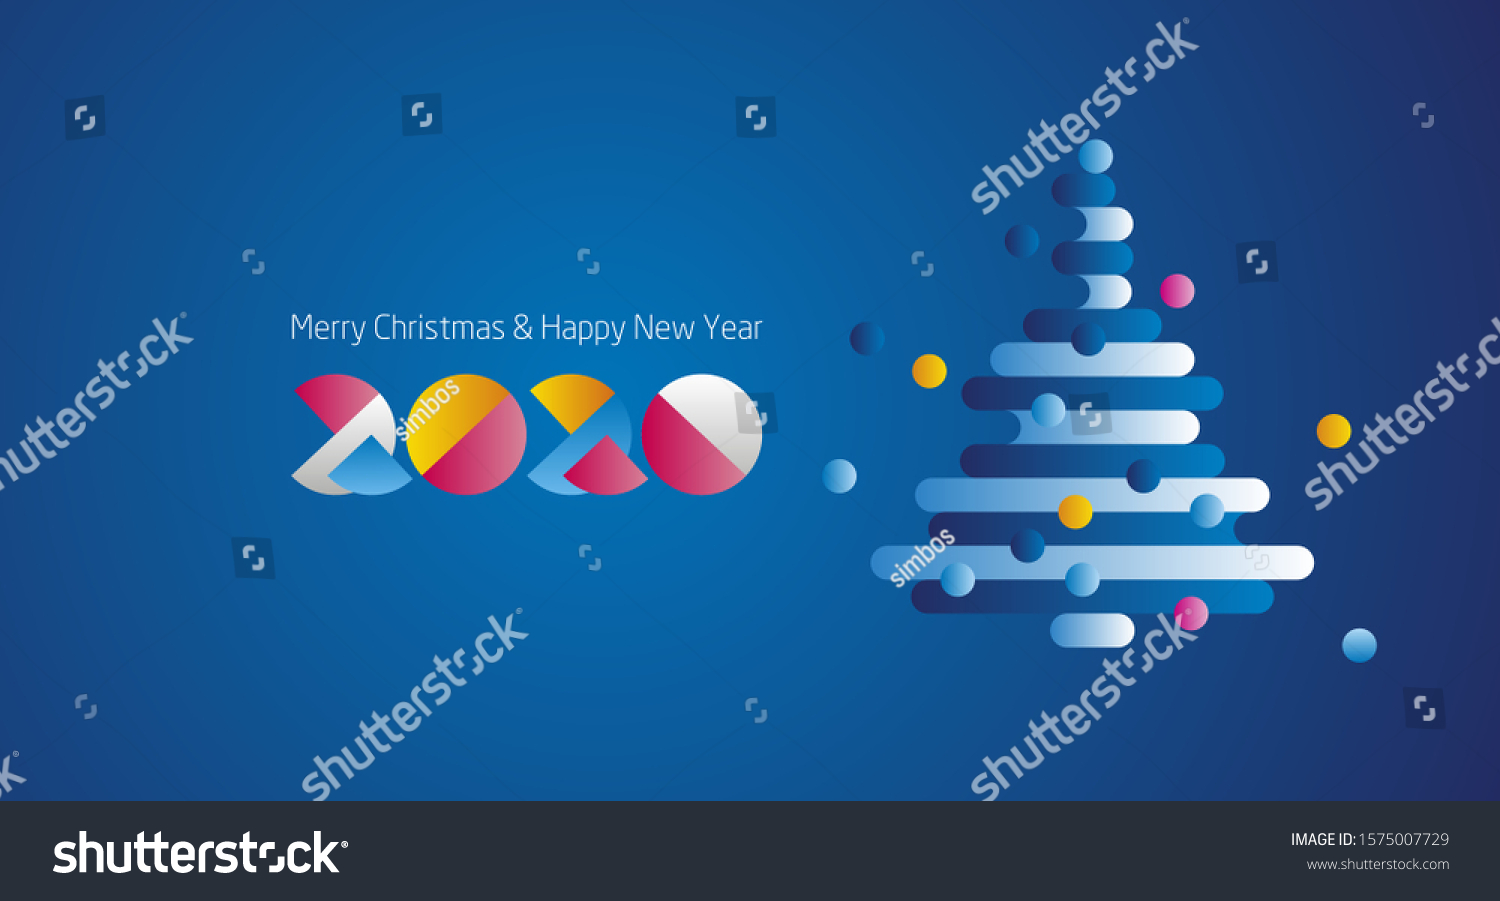 Merry Christmas Happy New Year 2020 Stock Vector (Royalty Free